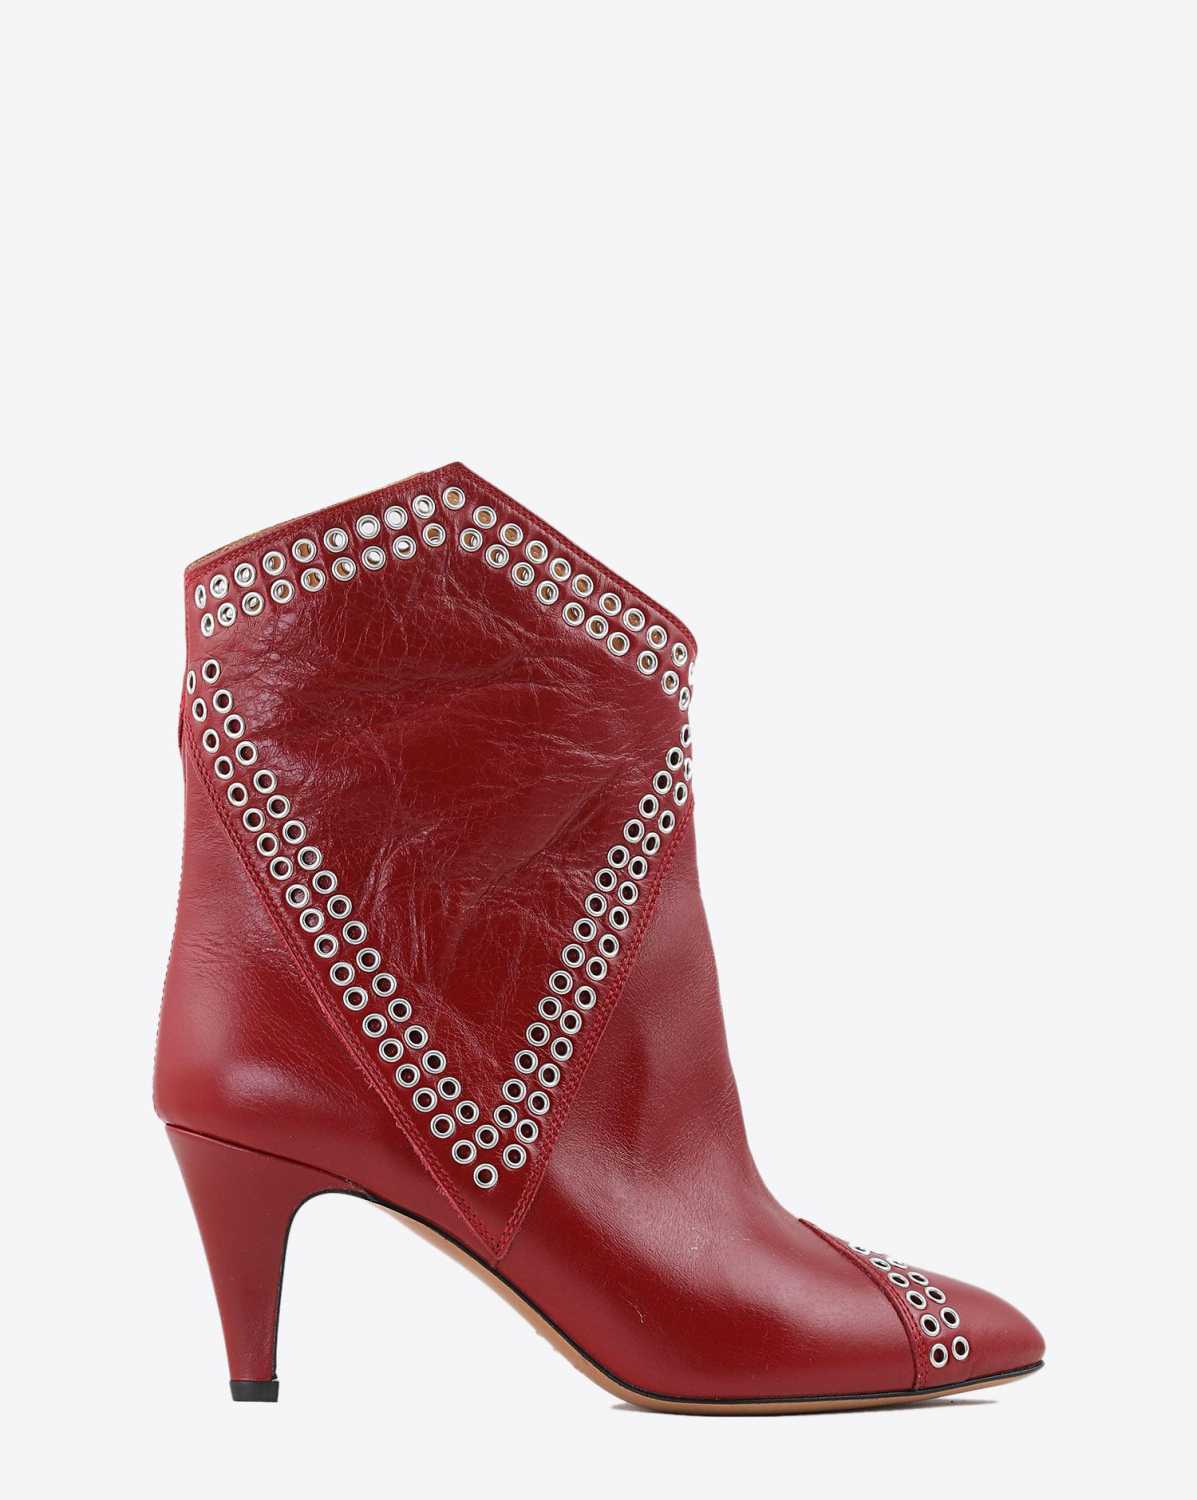 Isabel Marant Chaussures Boots DEMKA - Red